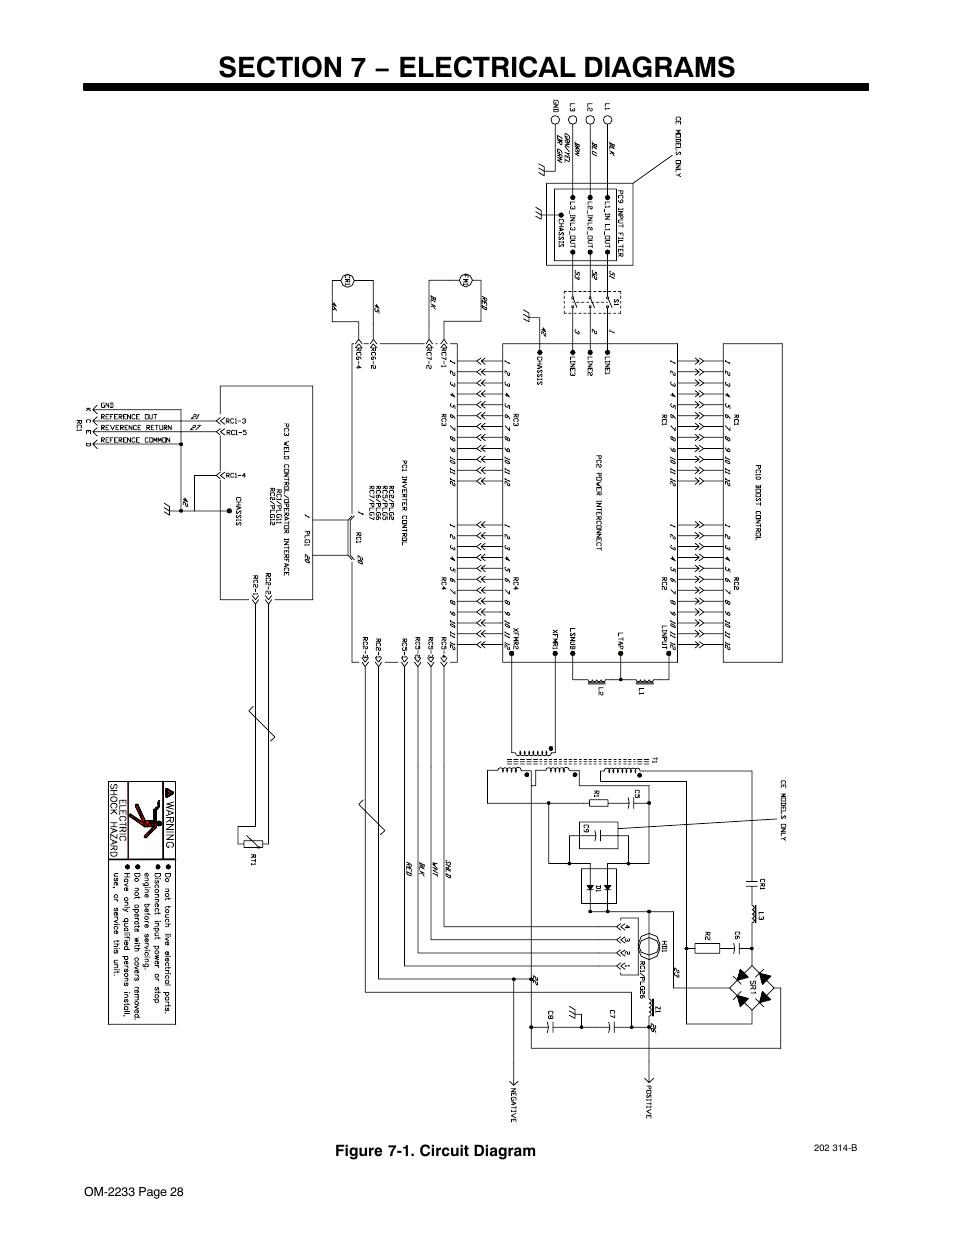 medium resolution of section 7 electrical diagrams miller electric maxstar 200 str user manual page 34 56